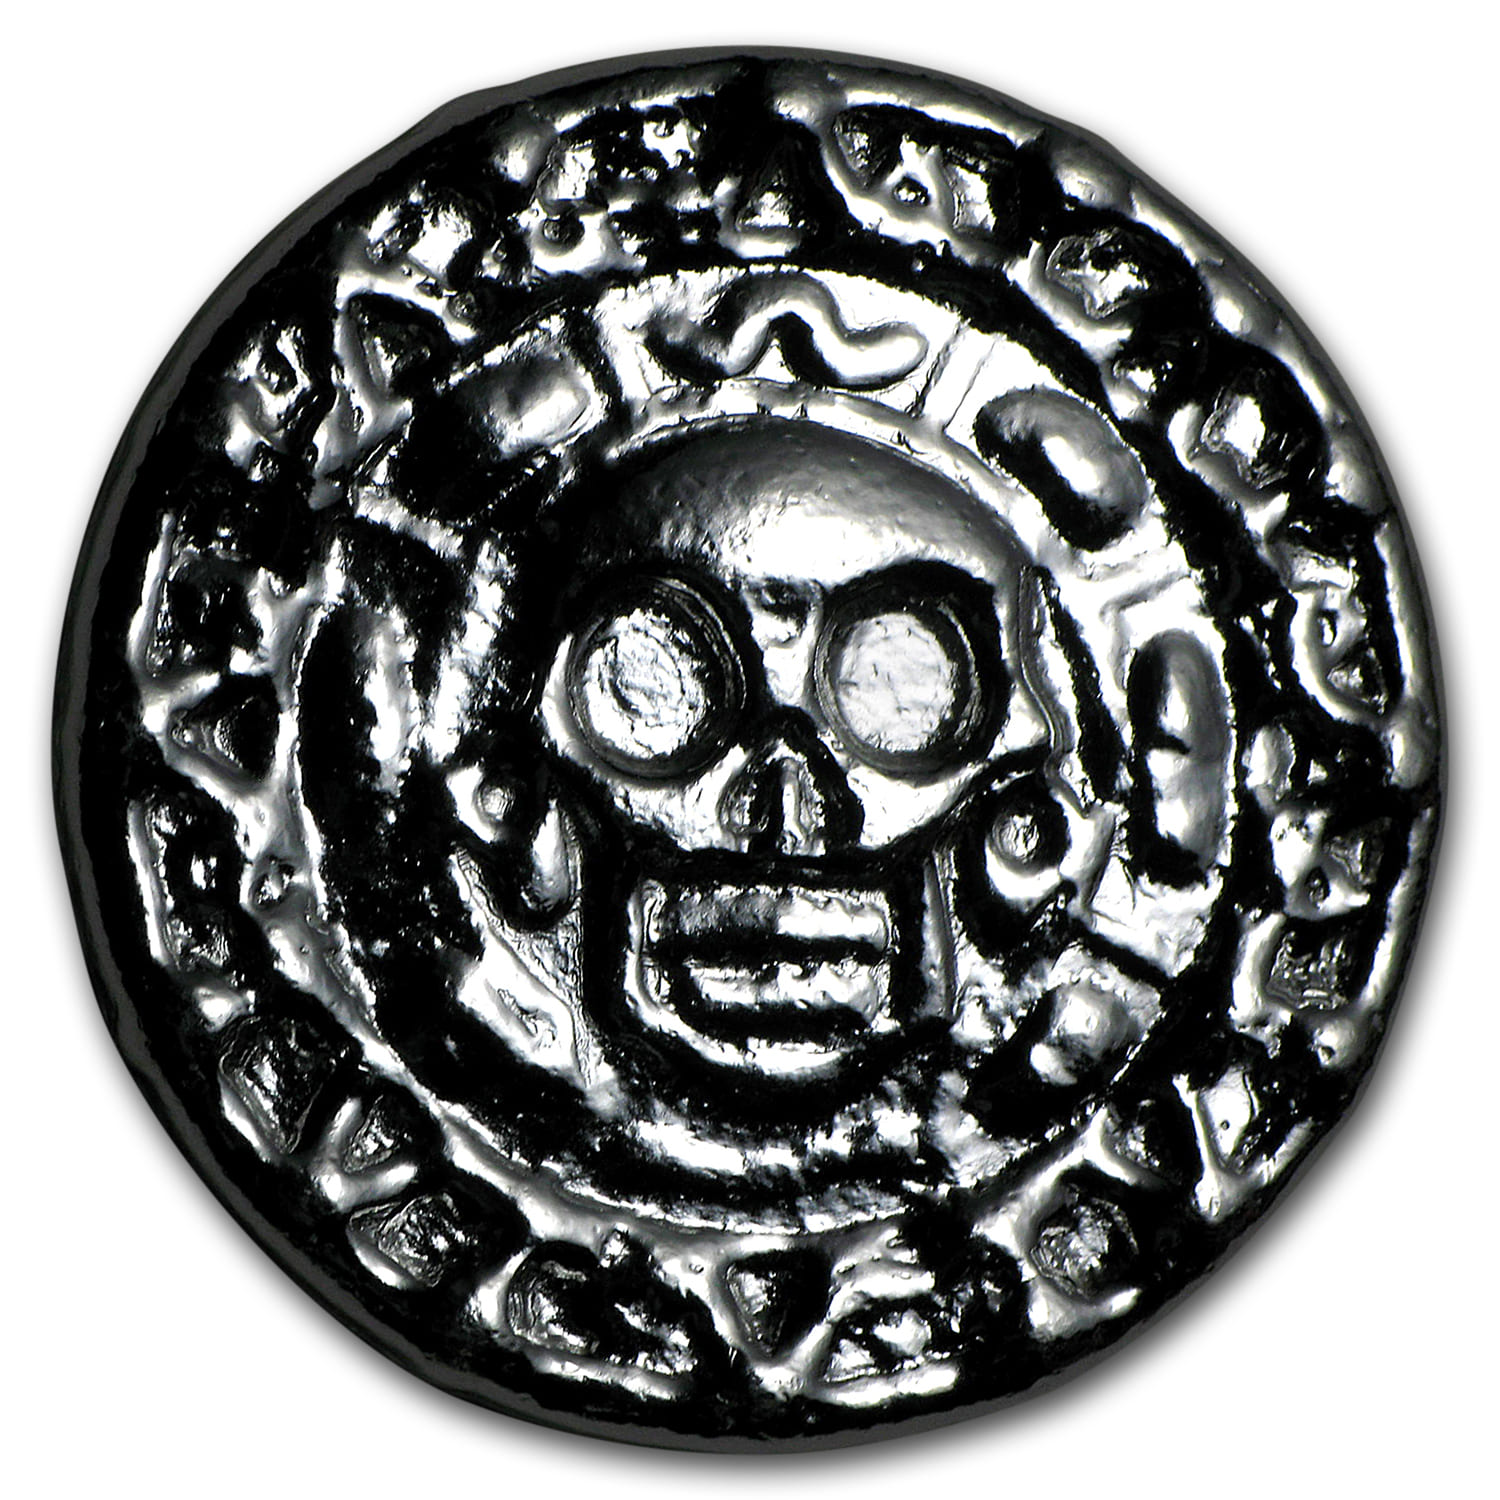 50 gram Silver Round - Yeager Poured Silver (Plata Muerta)